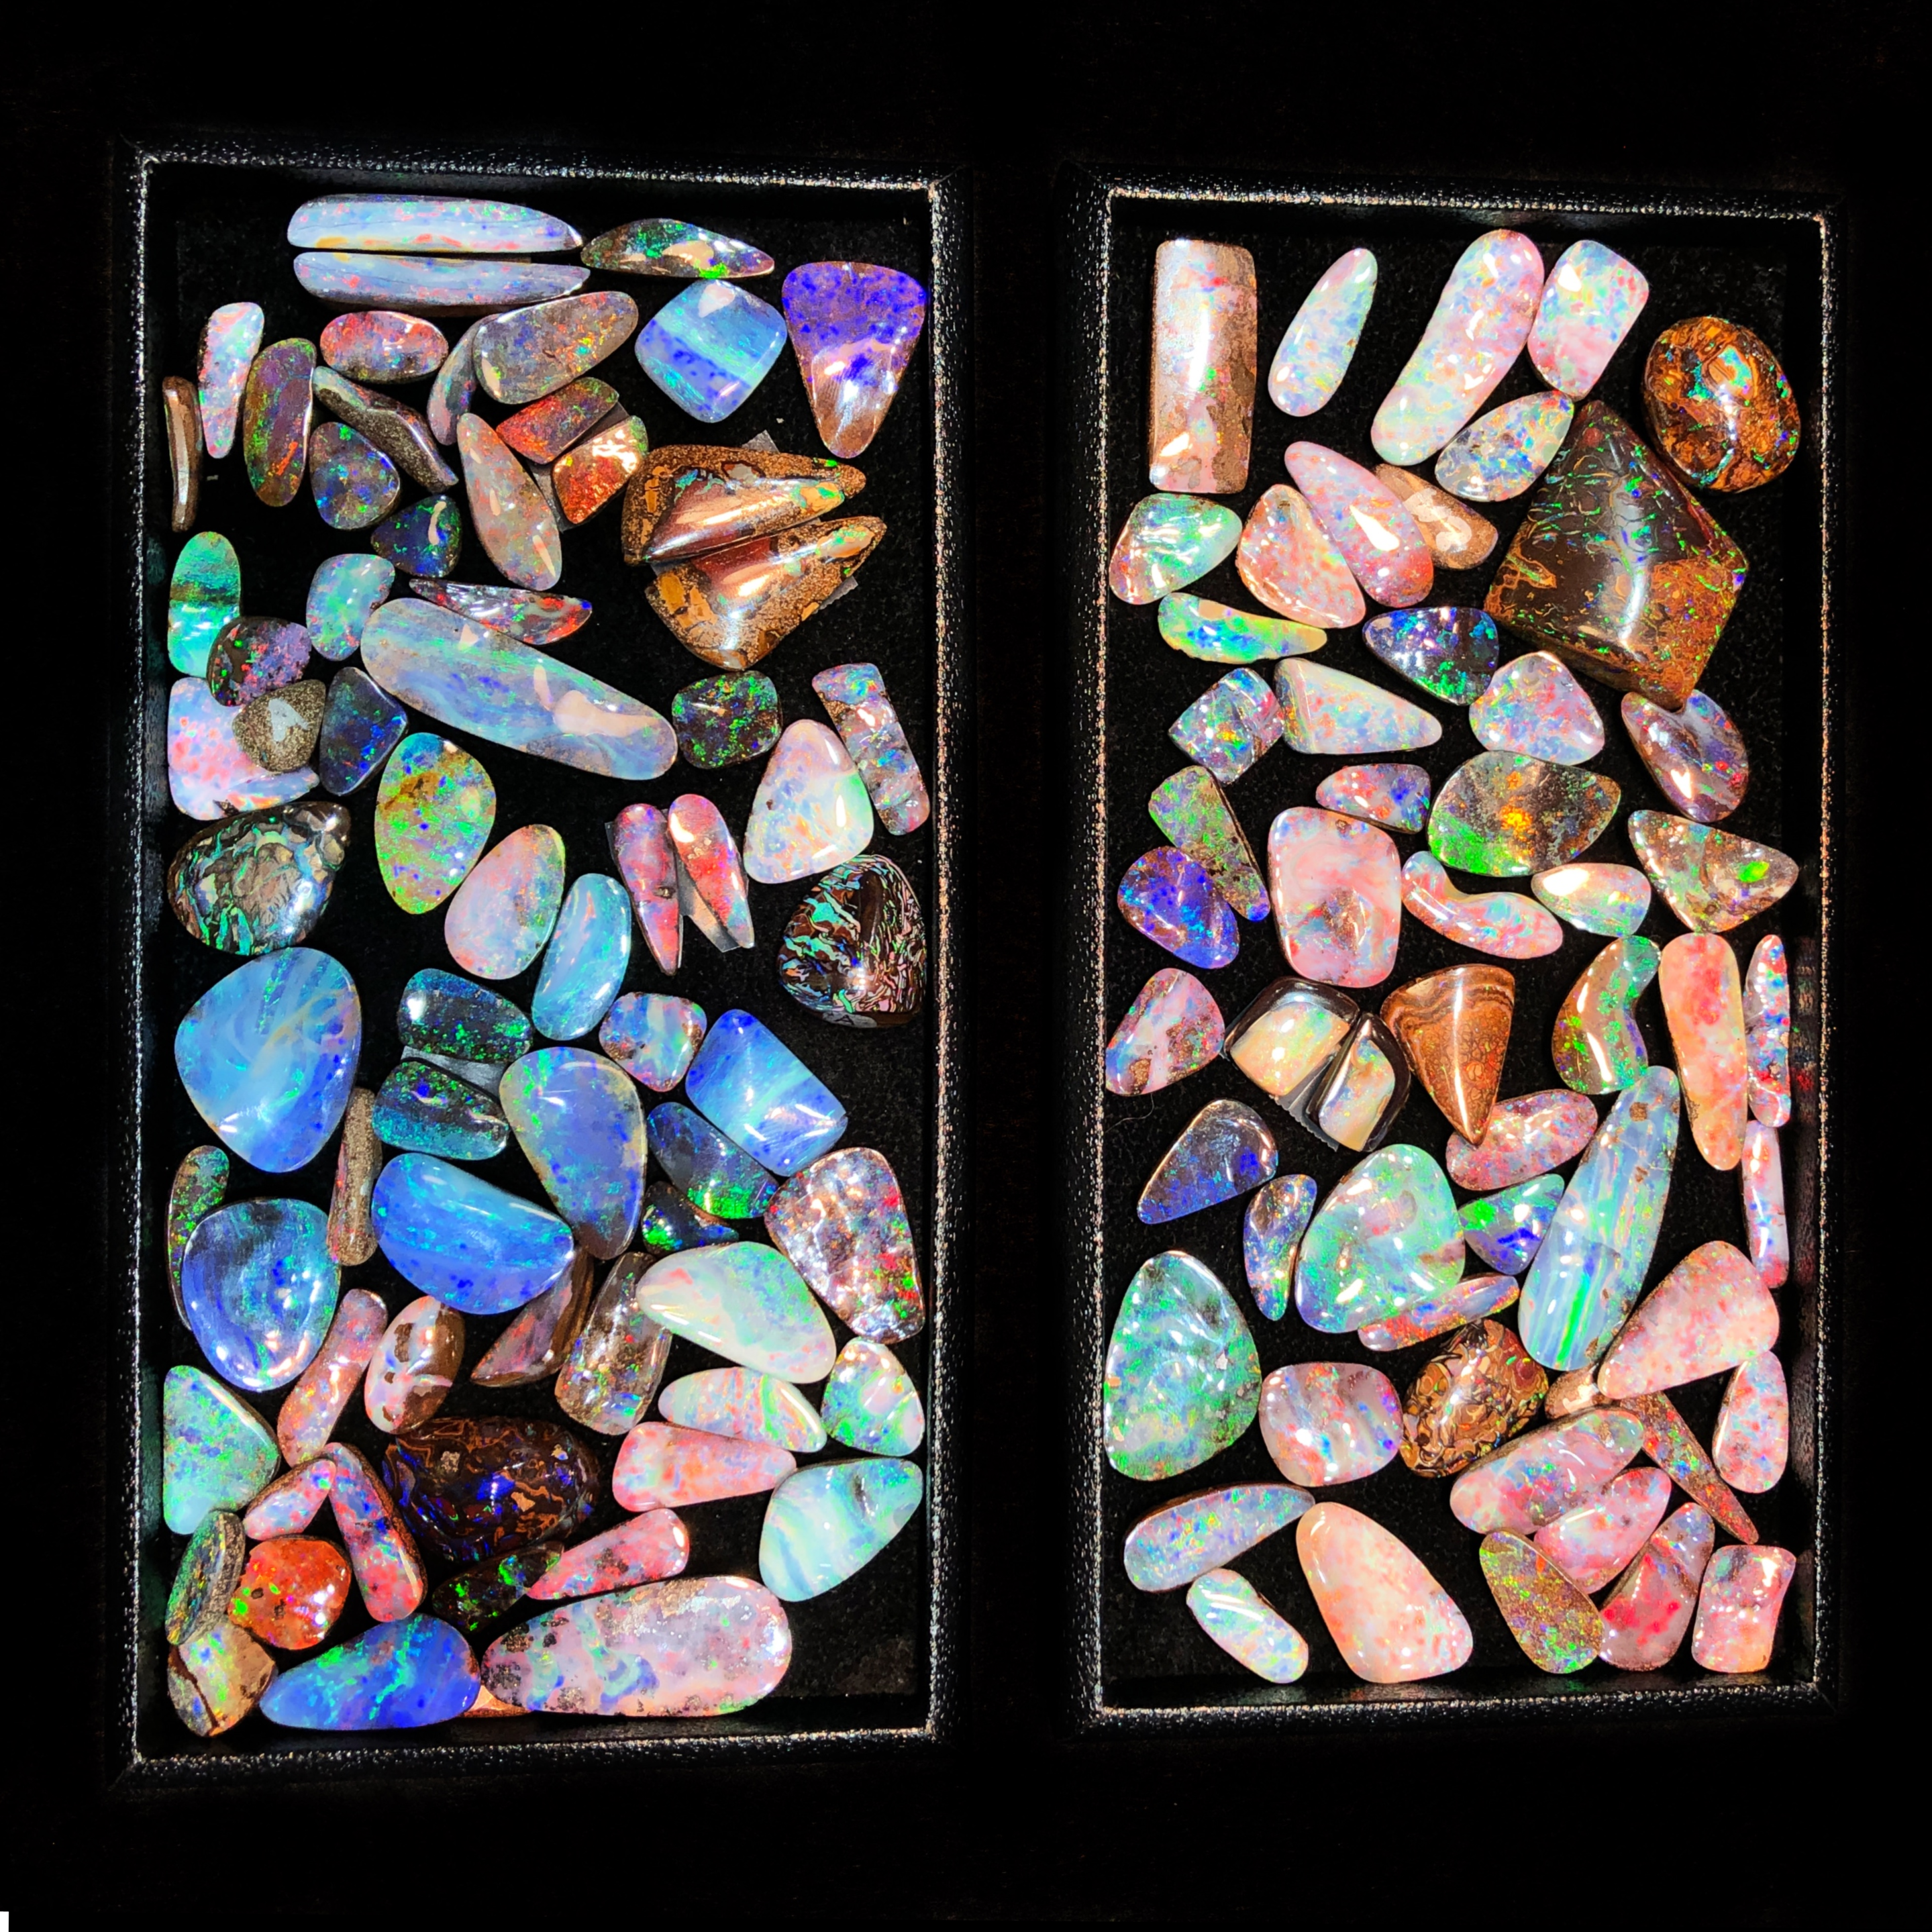 Beautiful opals from Parle Gems! Spotted at the AGTA GemFair 2019.